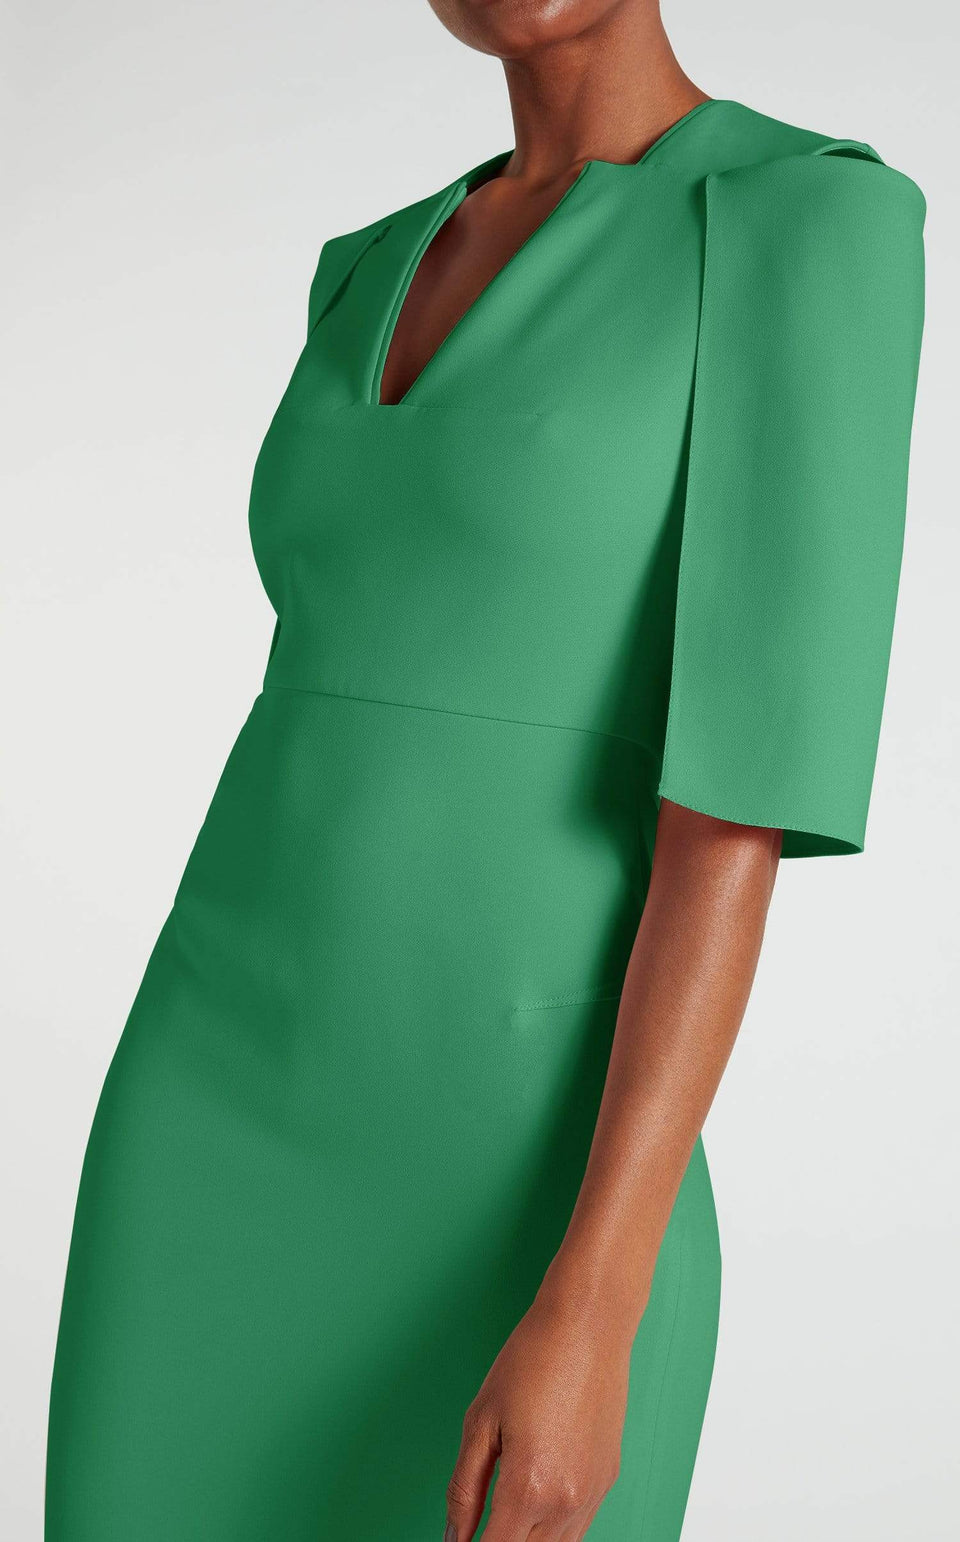 Queensbury Dress In Emerald Green from Roland Mouret